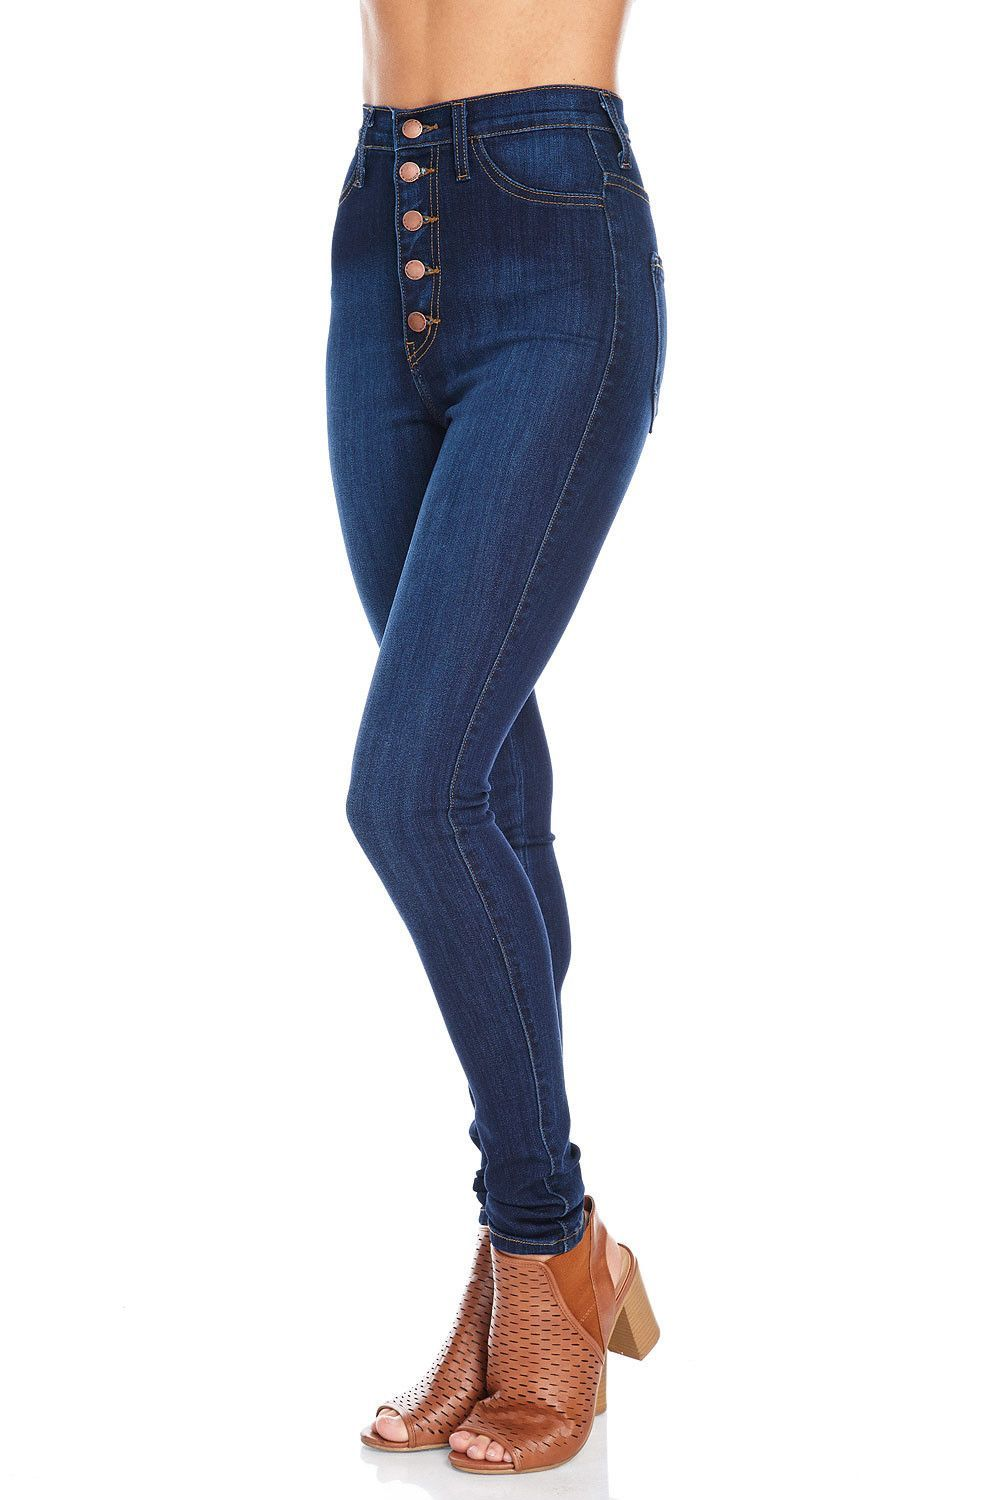 8709e2a147b Super high waist skinny jeans with faux pockets at the front and open  pockets at the back. Stacked button- fly closure. Super stretchy denim with  a soft ...